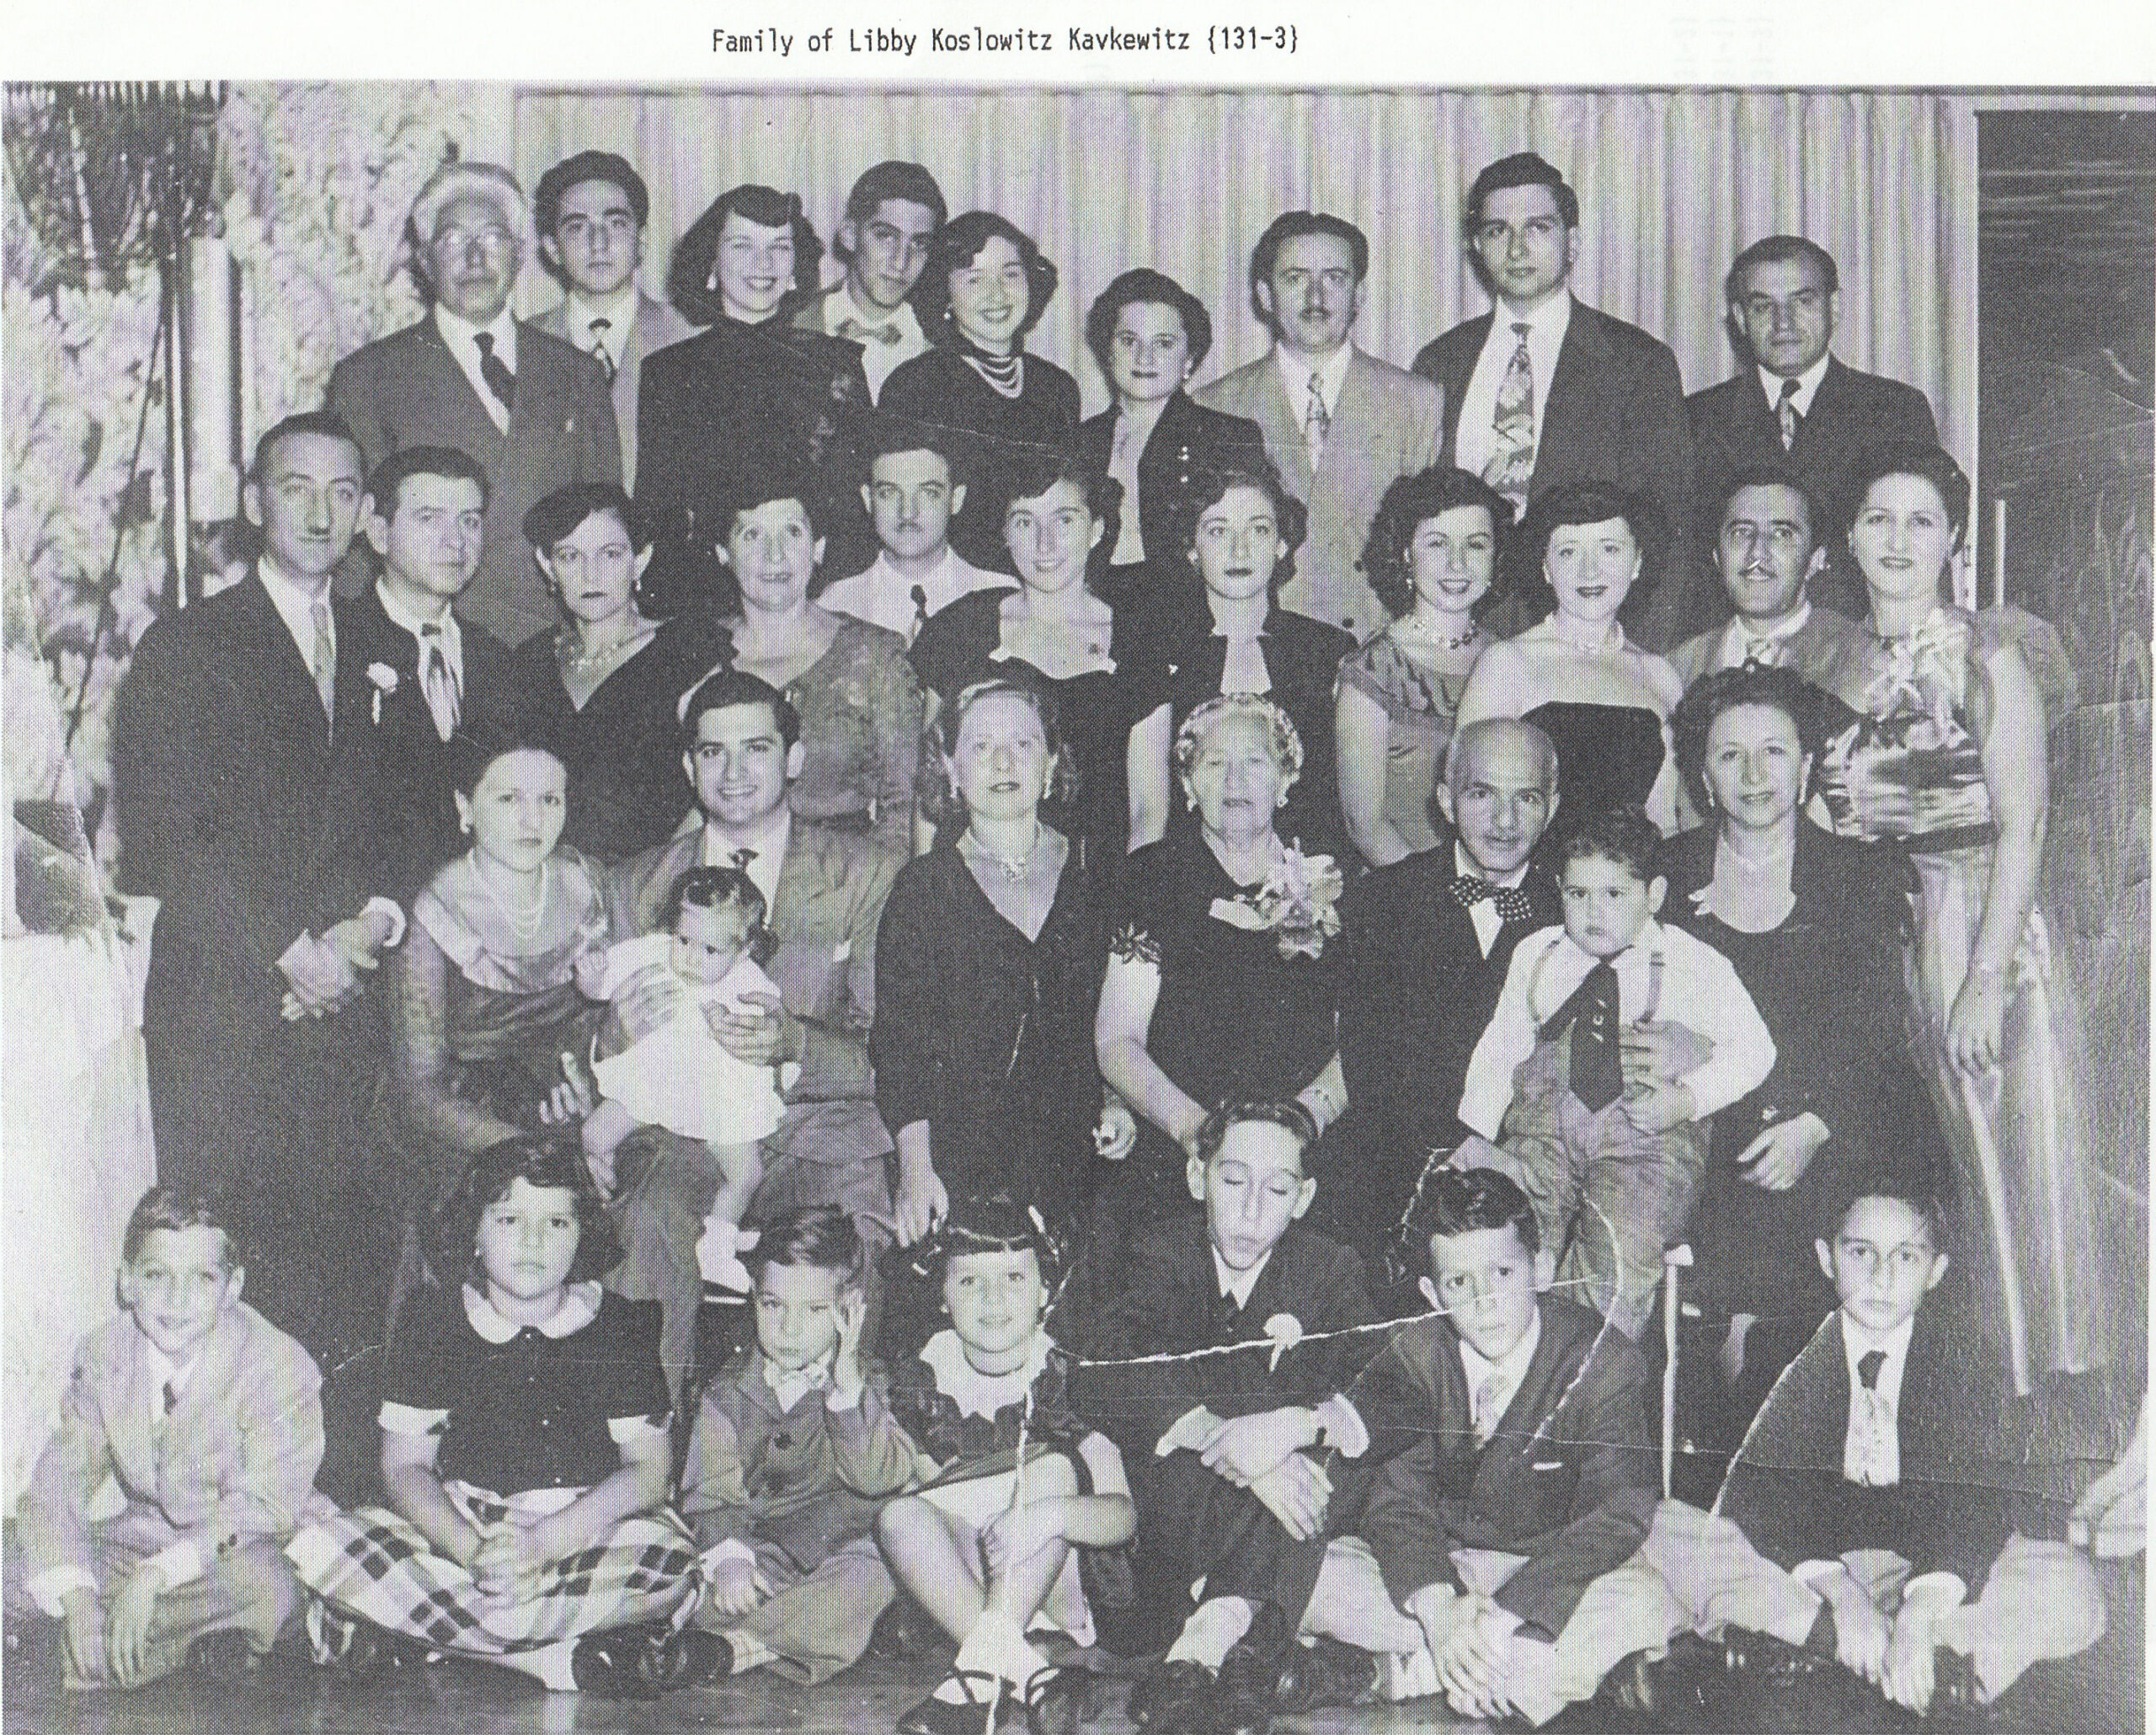 The large Kavfewitz contingent of the Koslowitz Family Foundation--about eight years before I was born (circa 1949). That's Uncle Louis top left, without whom there probably would not have been a family circle.